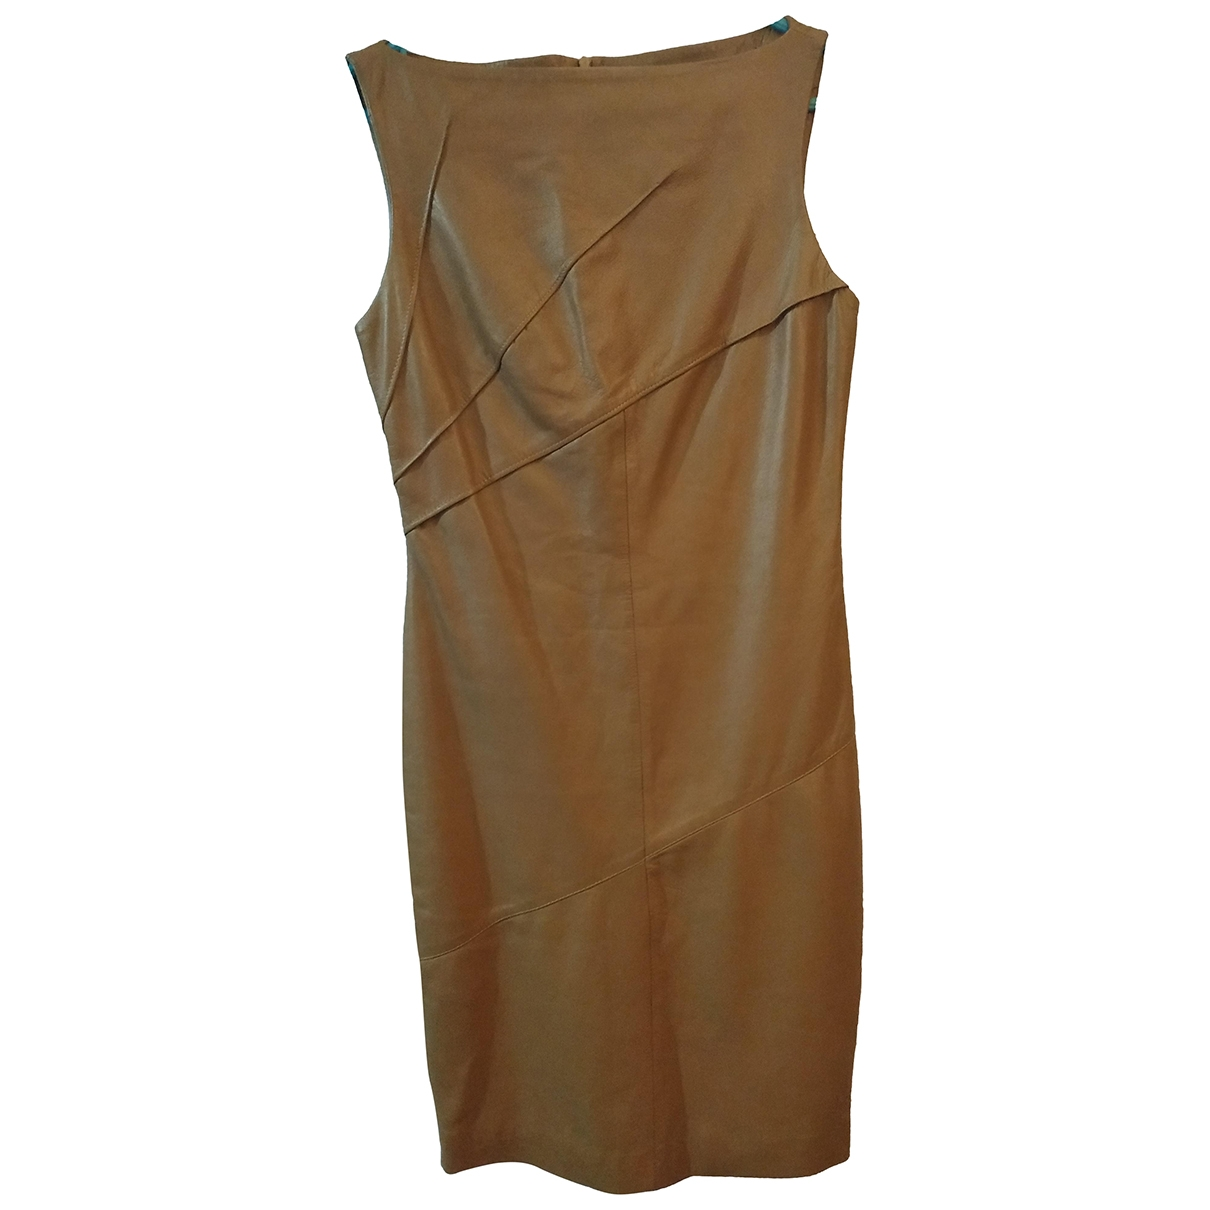 Versace \N Beige Leather dress for Women 42 IT